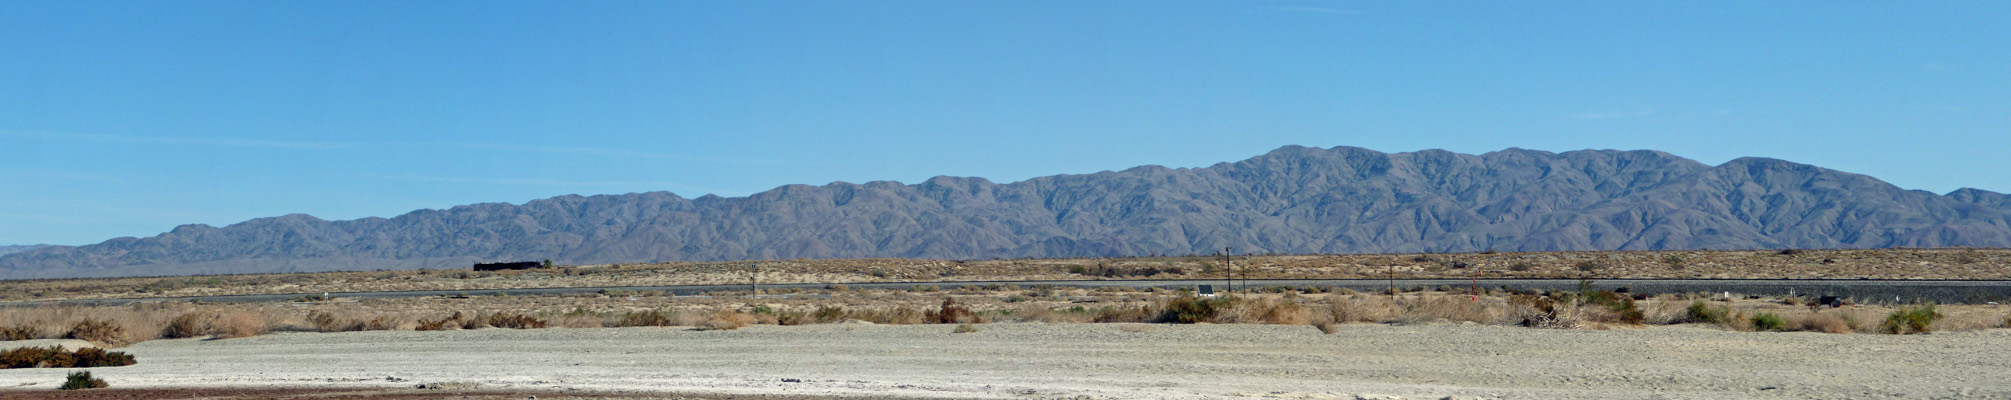 Looking east from Salton Sea